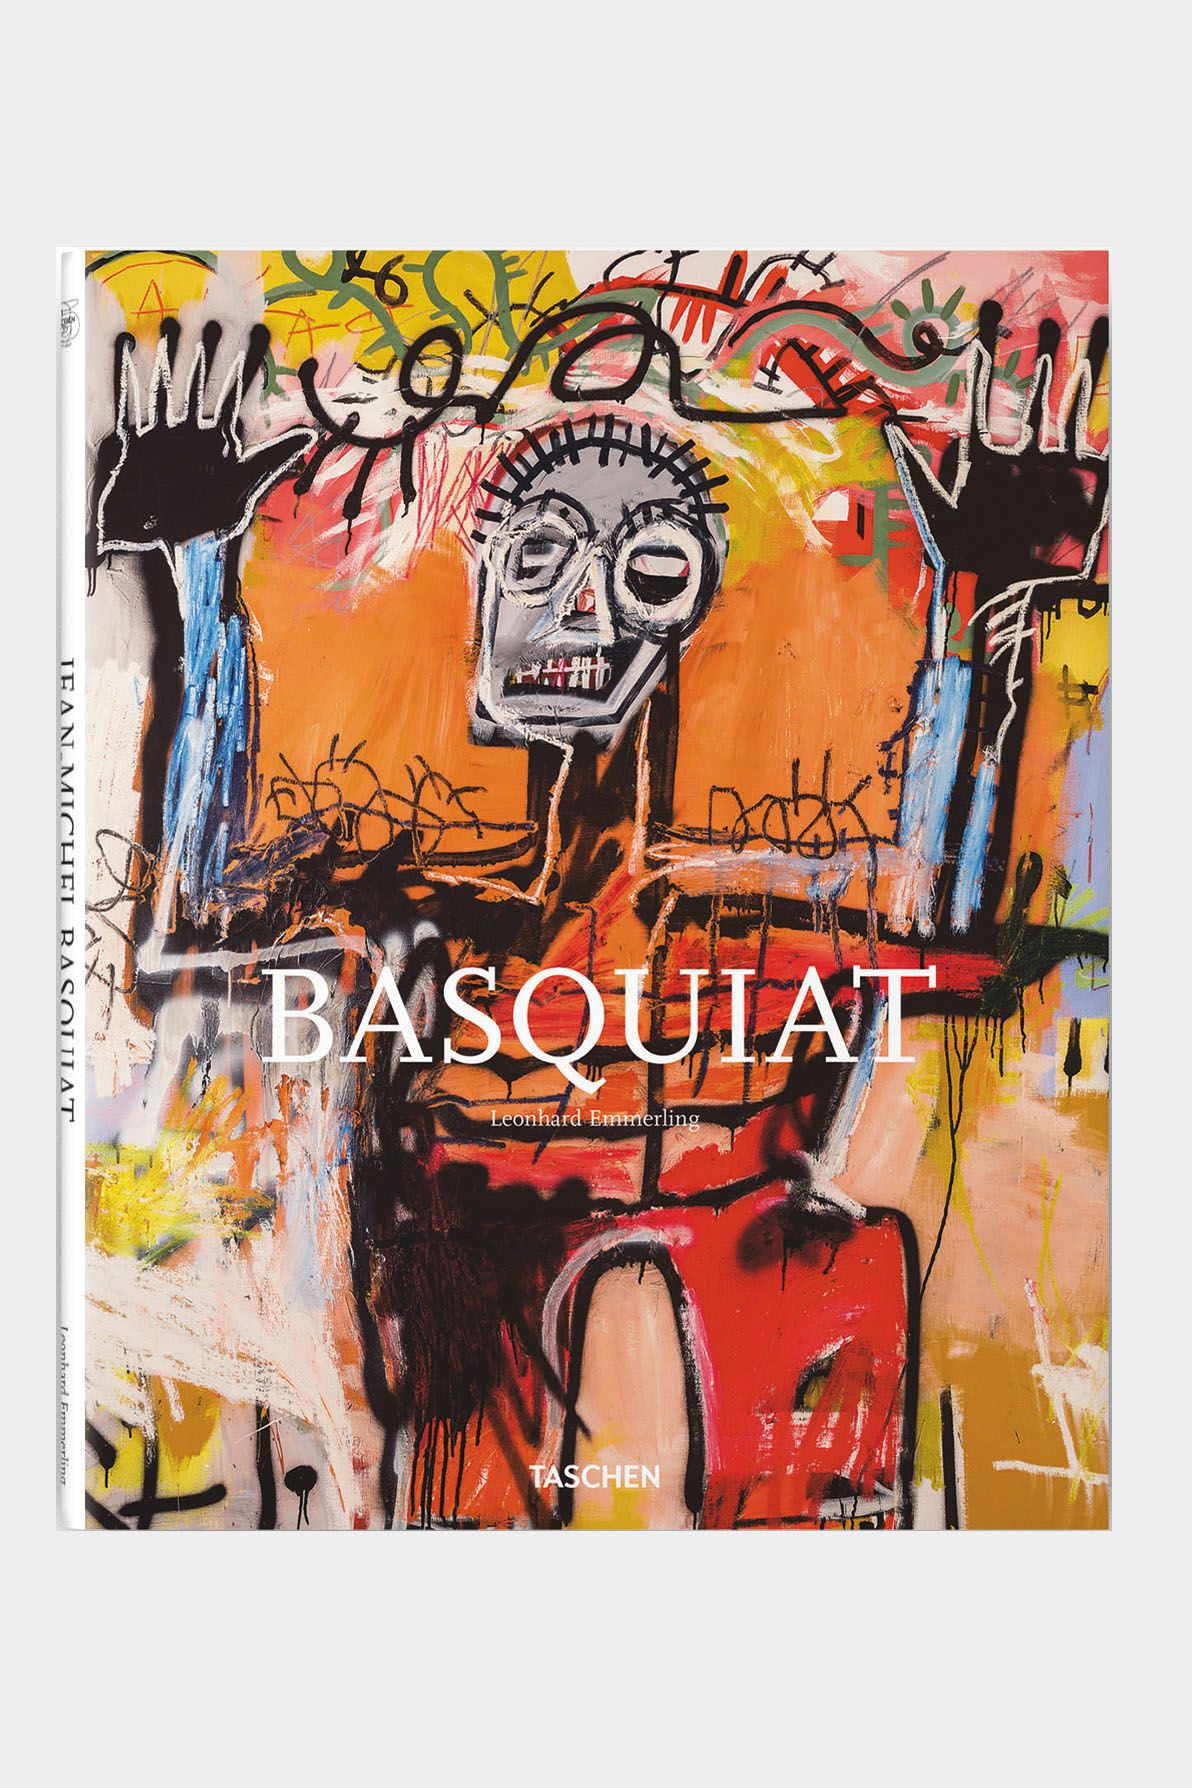 Basquiat Suite Hazen Taschen Basquiat Art Basquiat Paintings